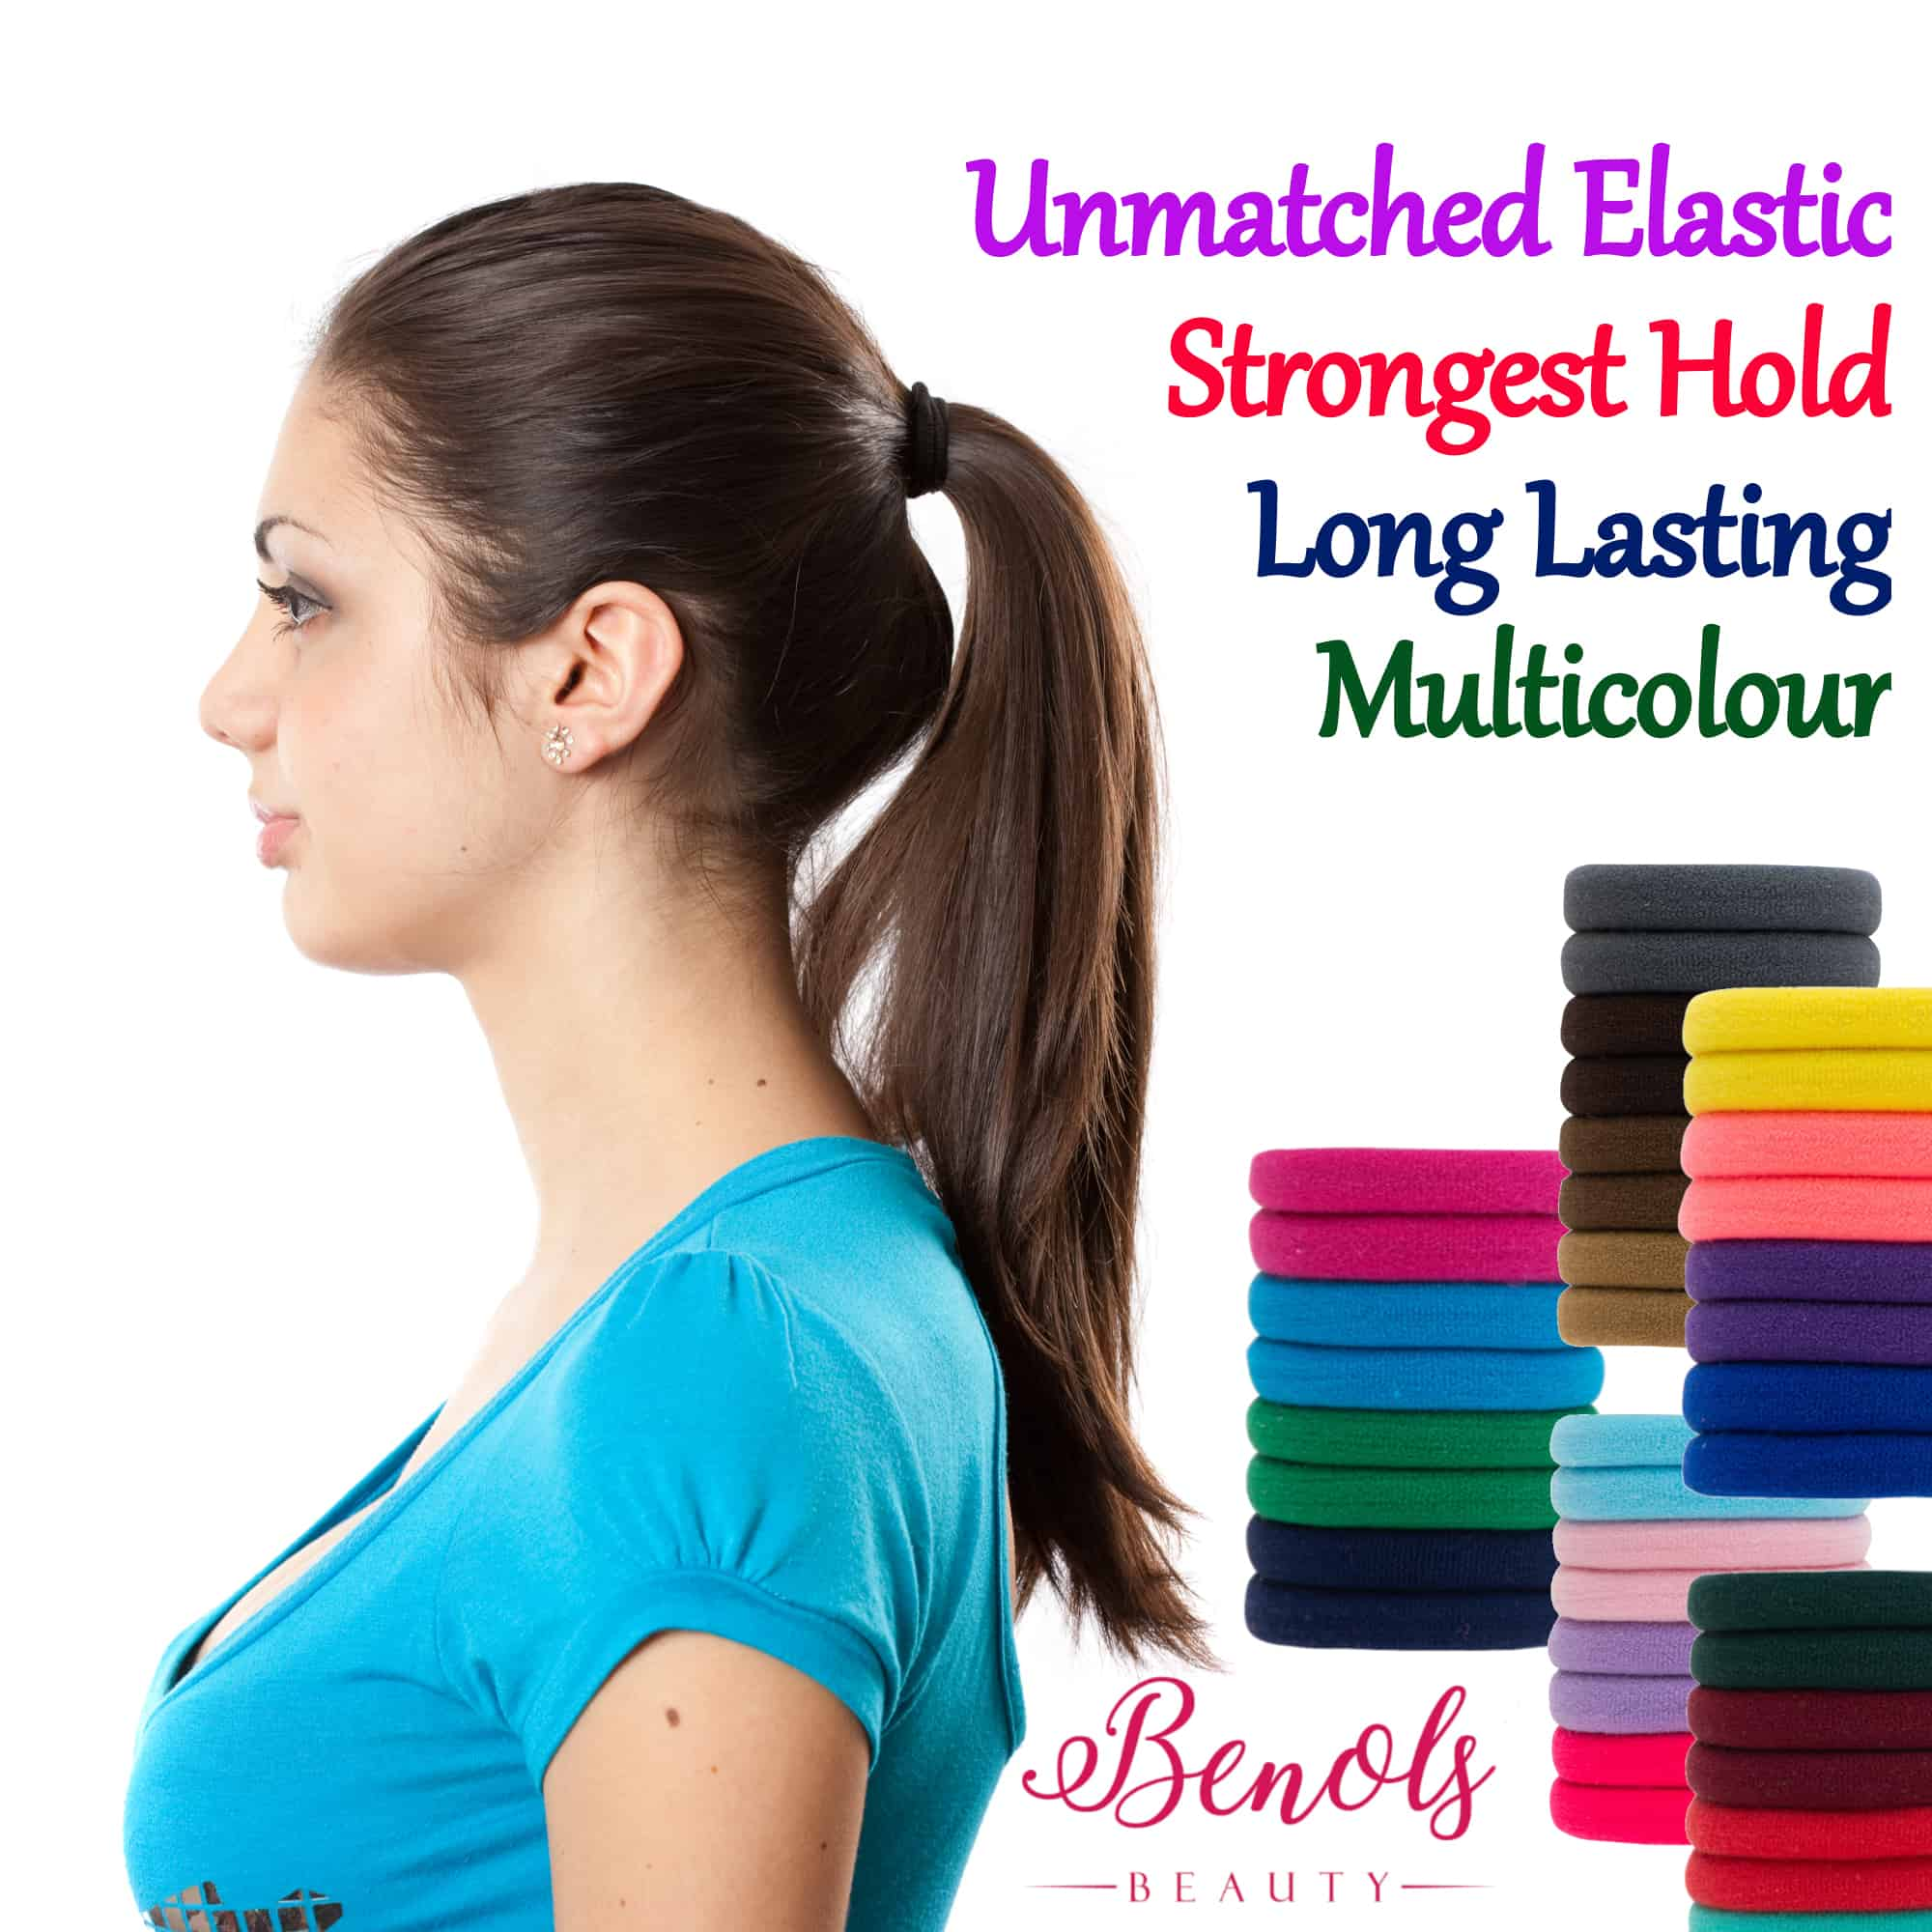 Hair Elastics  (48 pcs Assorted Colors) - Benols Beauty